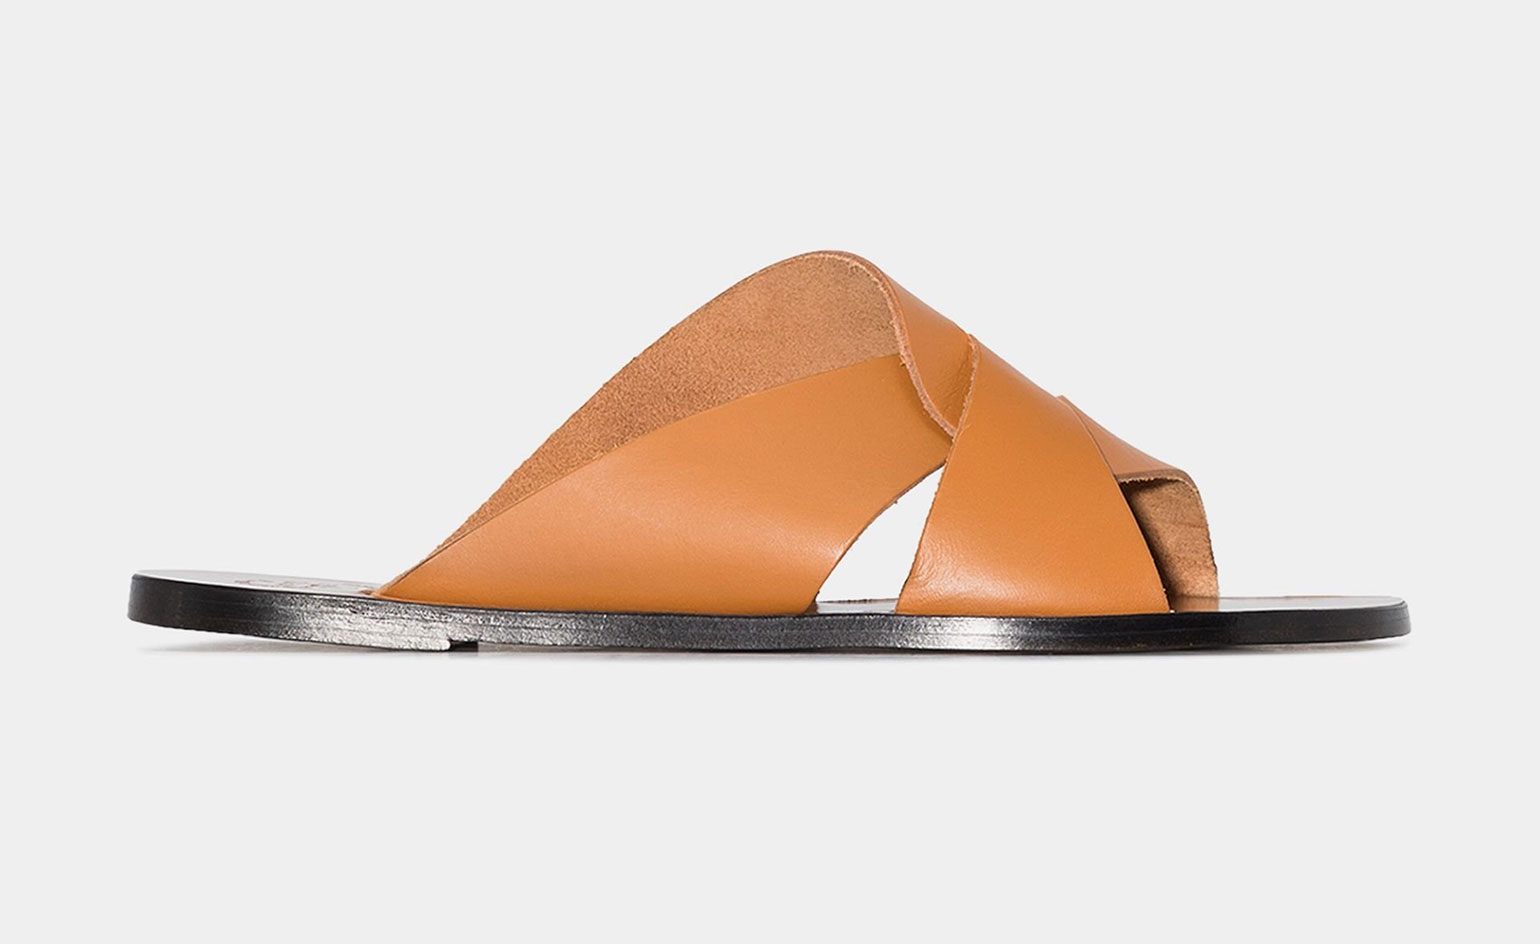 Summer sandals by ATP Atelier